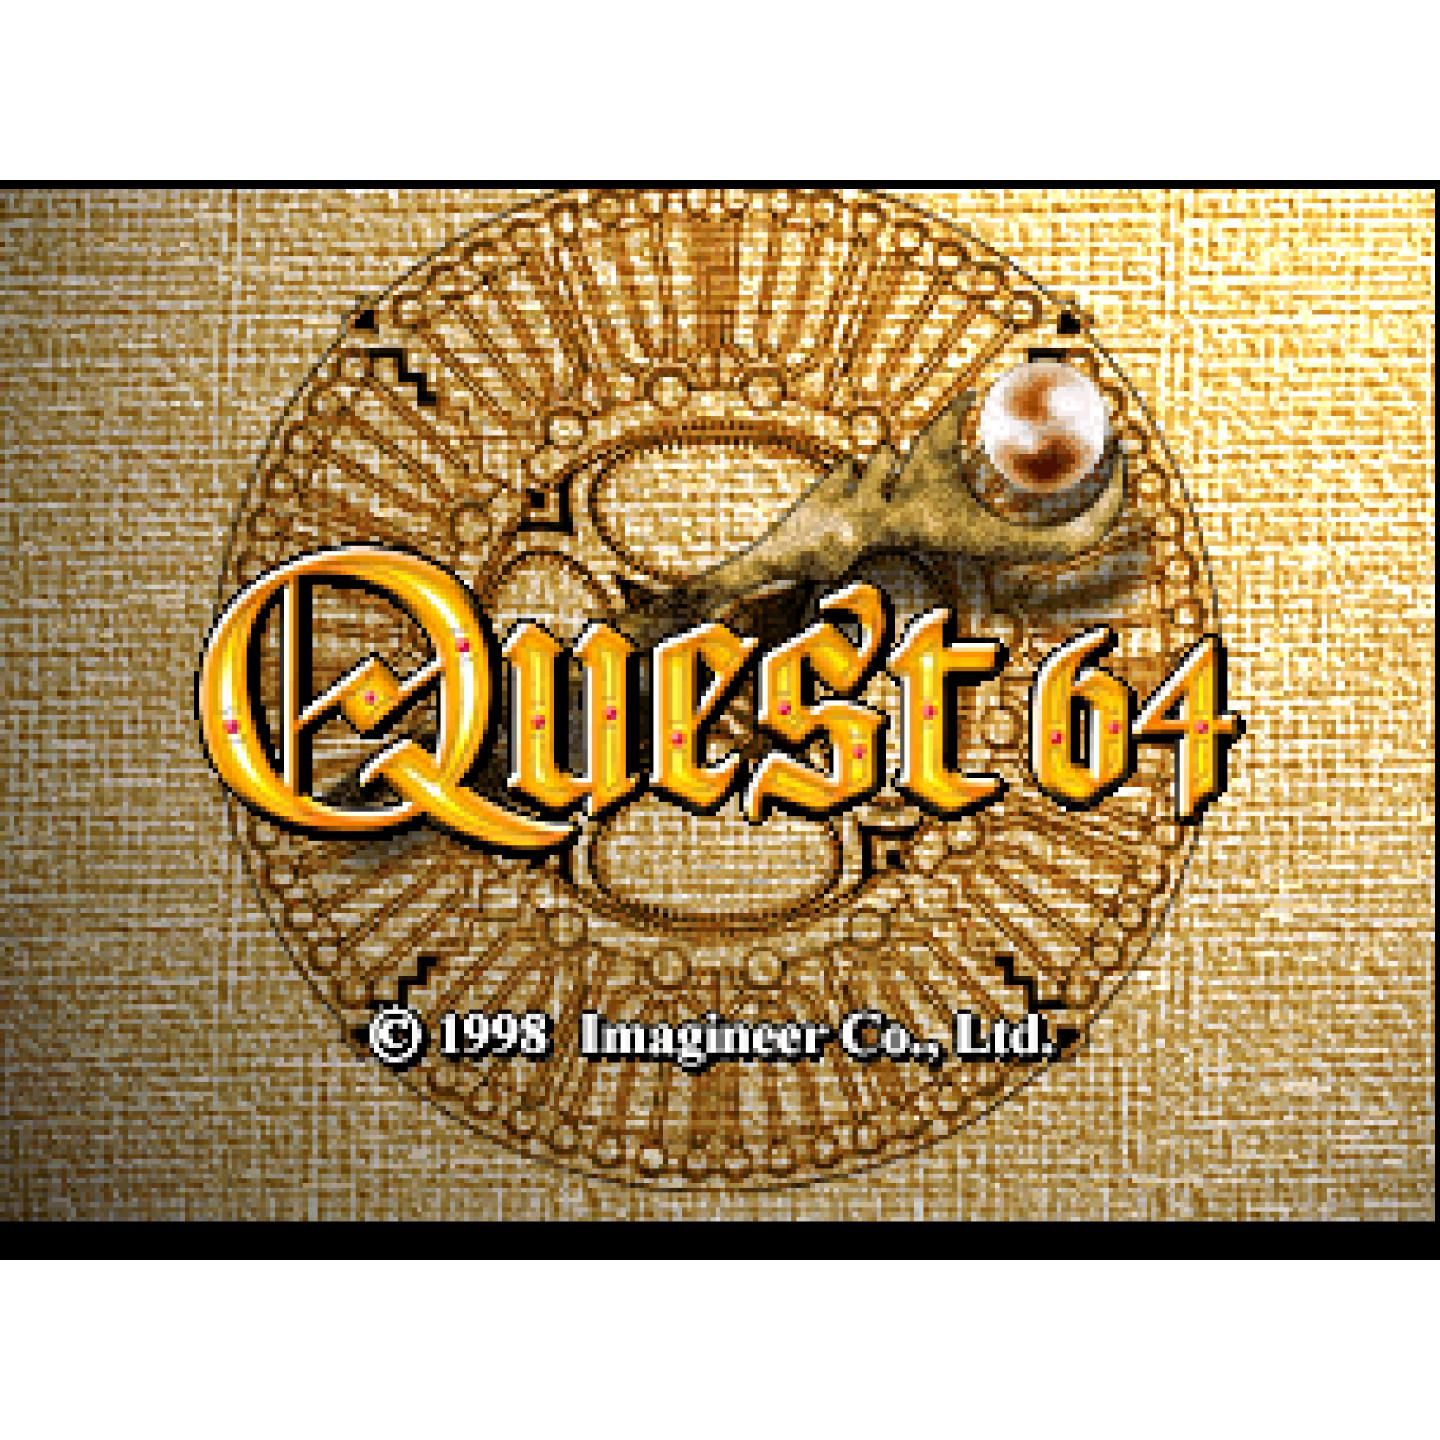 Quest 64 - Authentic Nintendo 64 (N64) Game Cartridge - YourGamingShop.com - Buy, Sell, Trade Video Games Online. 120 Day Warranty. Satisfaction Guaranteed.